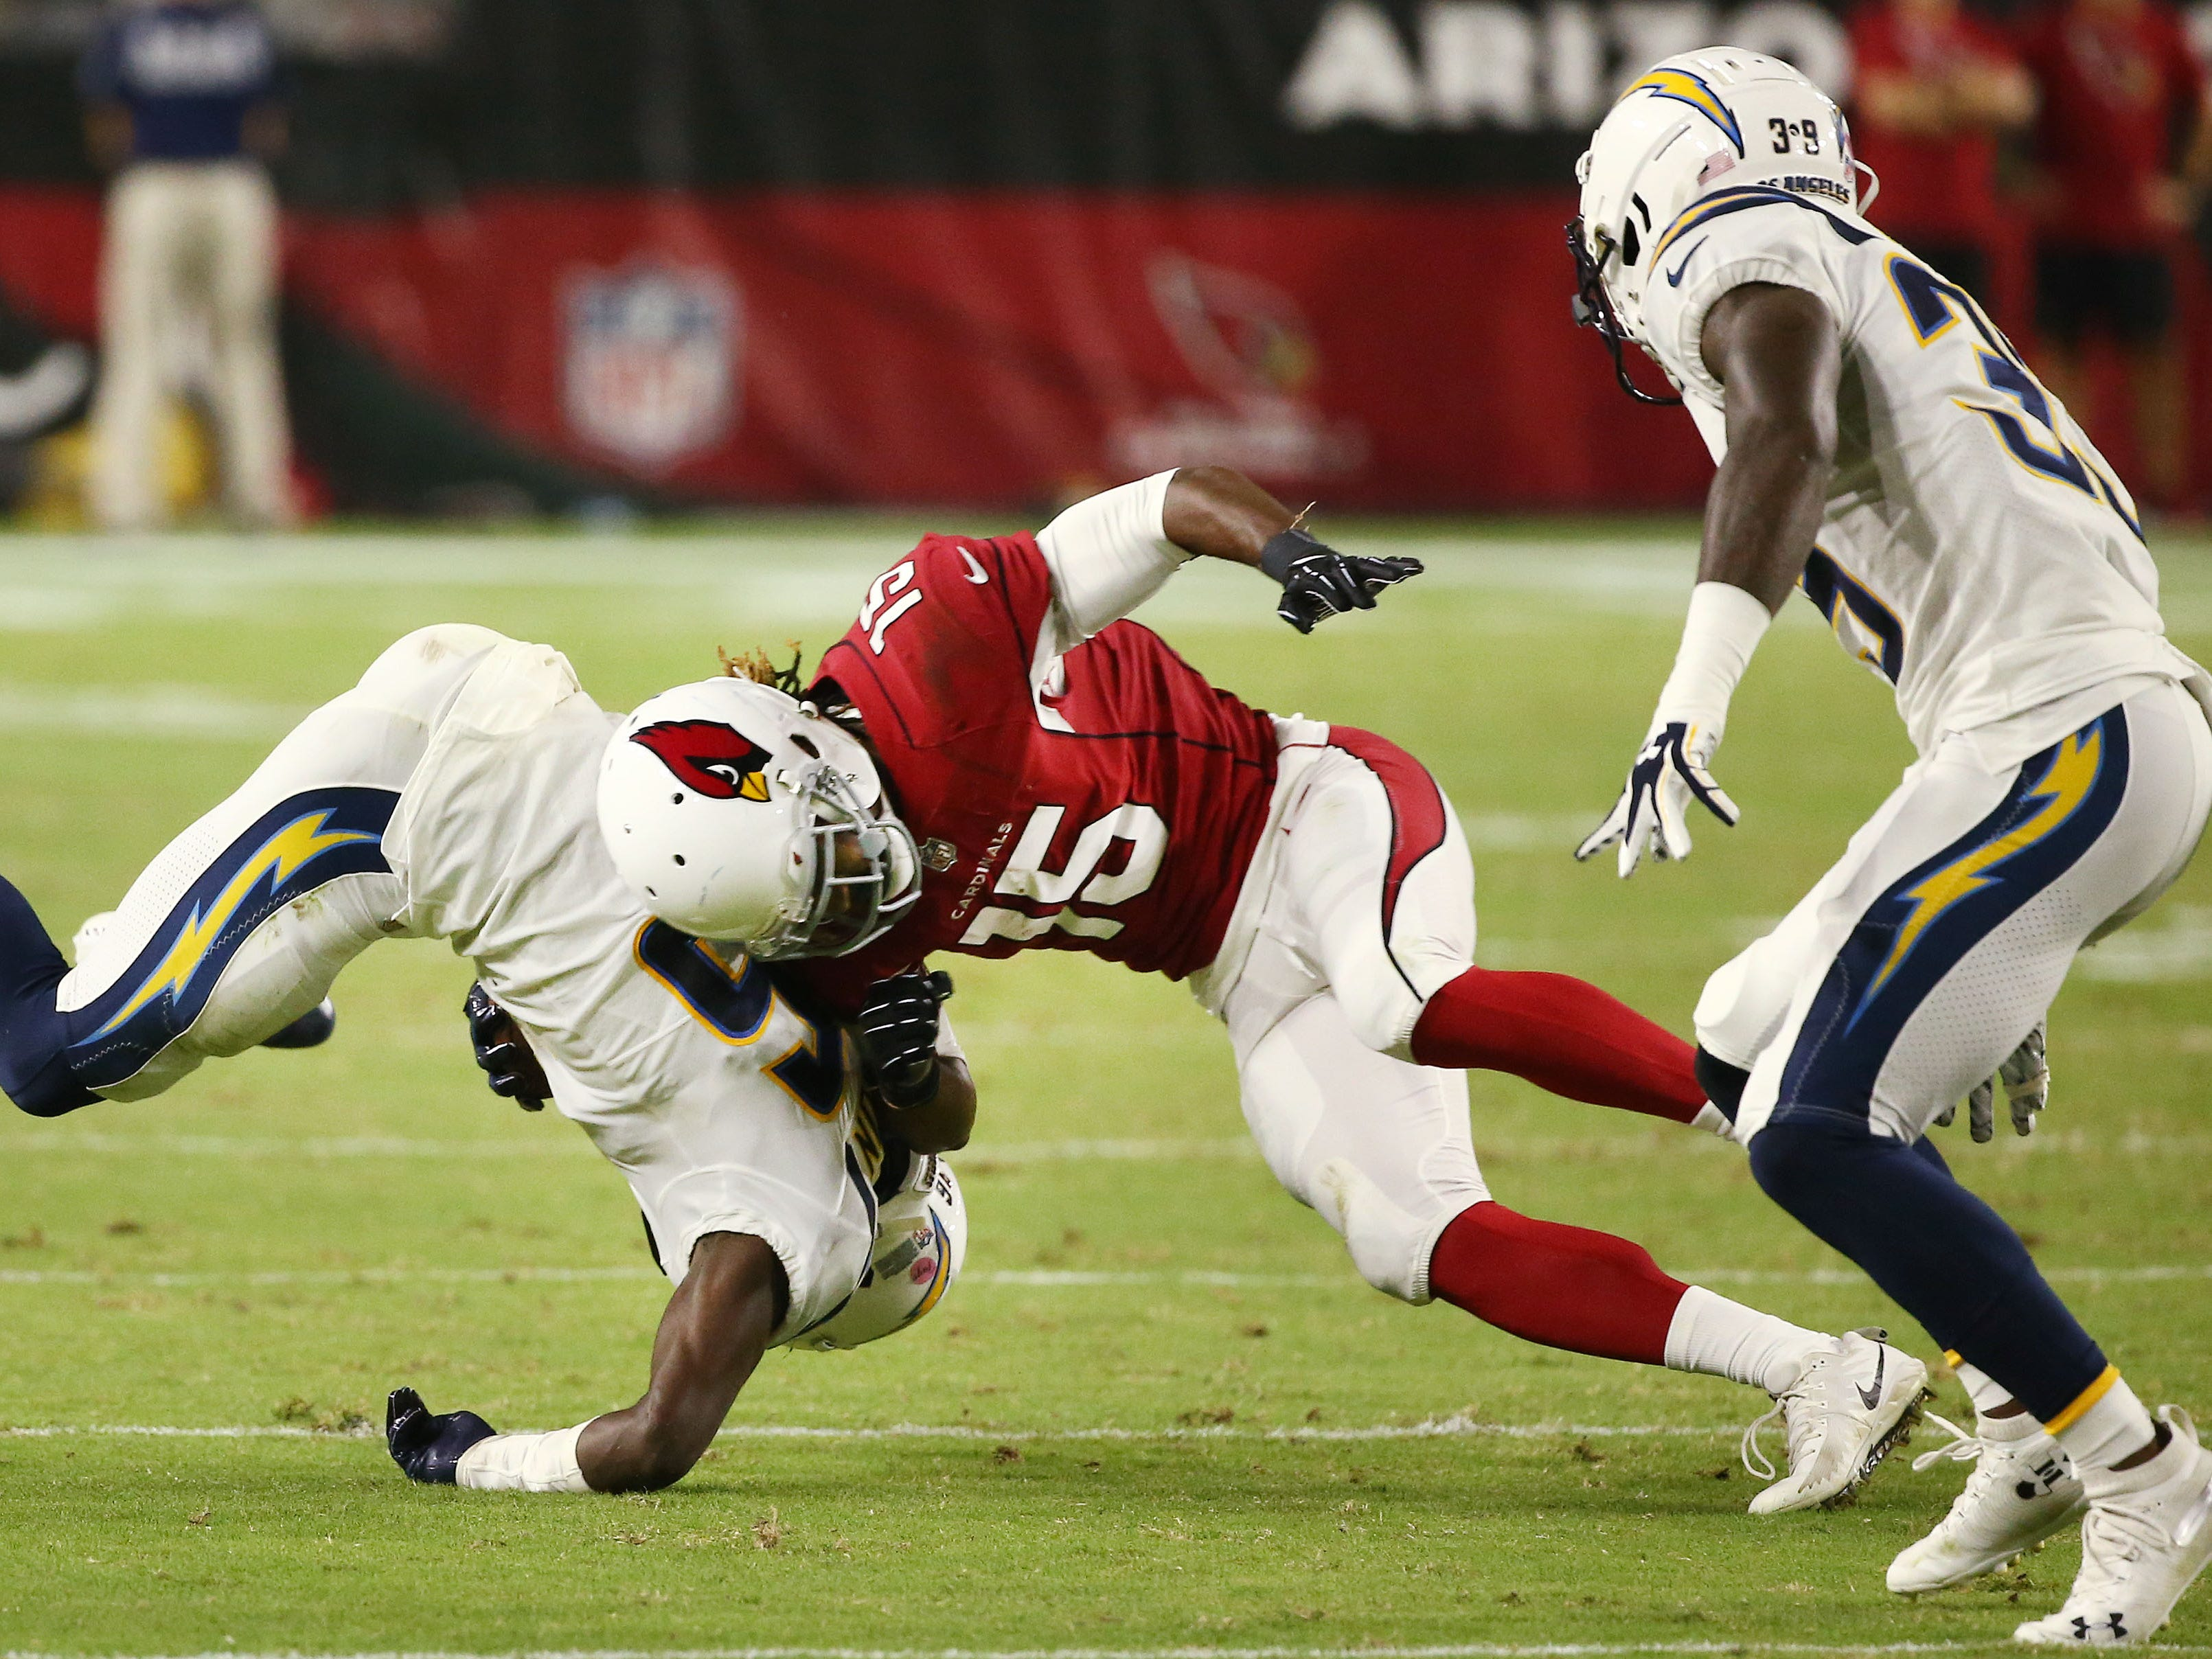 Arizona Cardinals Rashad Ross lowers his helmet with no penalty on the tackle of L.A. Chargers Brandon Facyson in the second half during a preseason NFL football game on Aug. 11, 2018 at University of Phoenix Stadium in Glendale, Ariz.